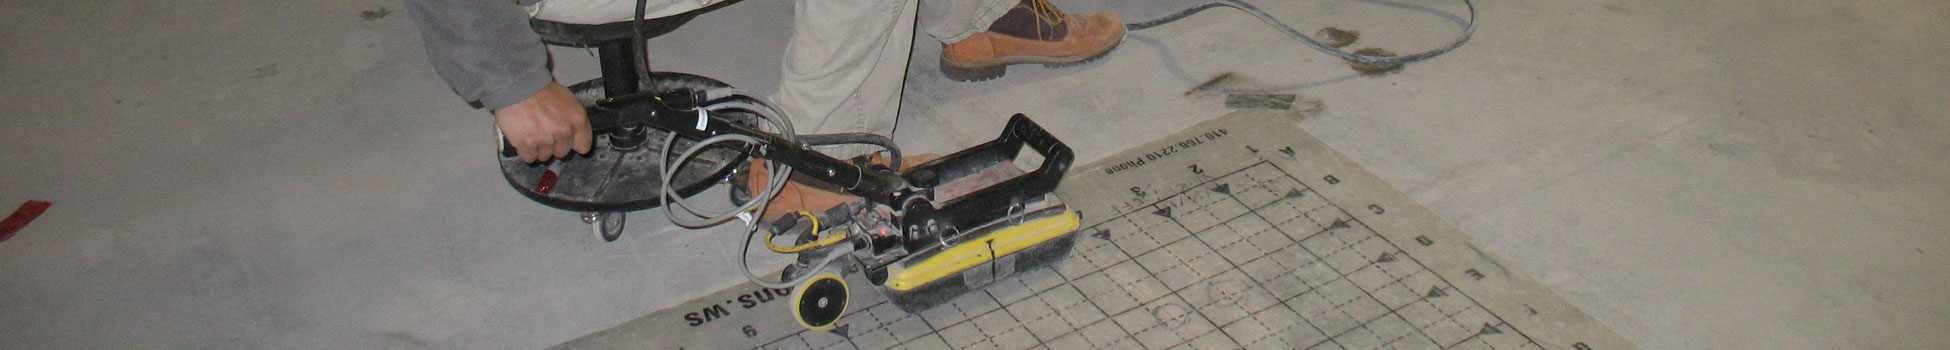 Ground Penetrating Radar How Does it Work - G&M Services, LLC